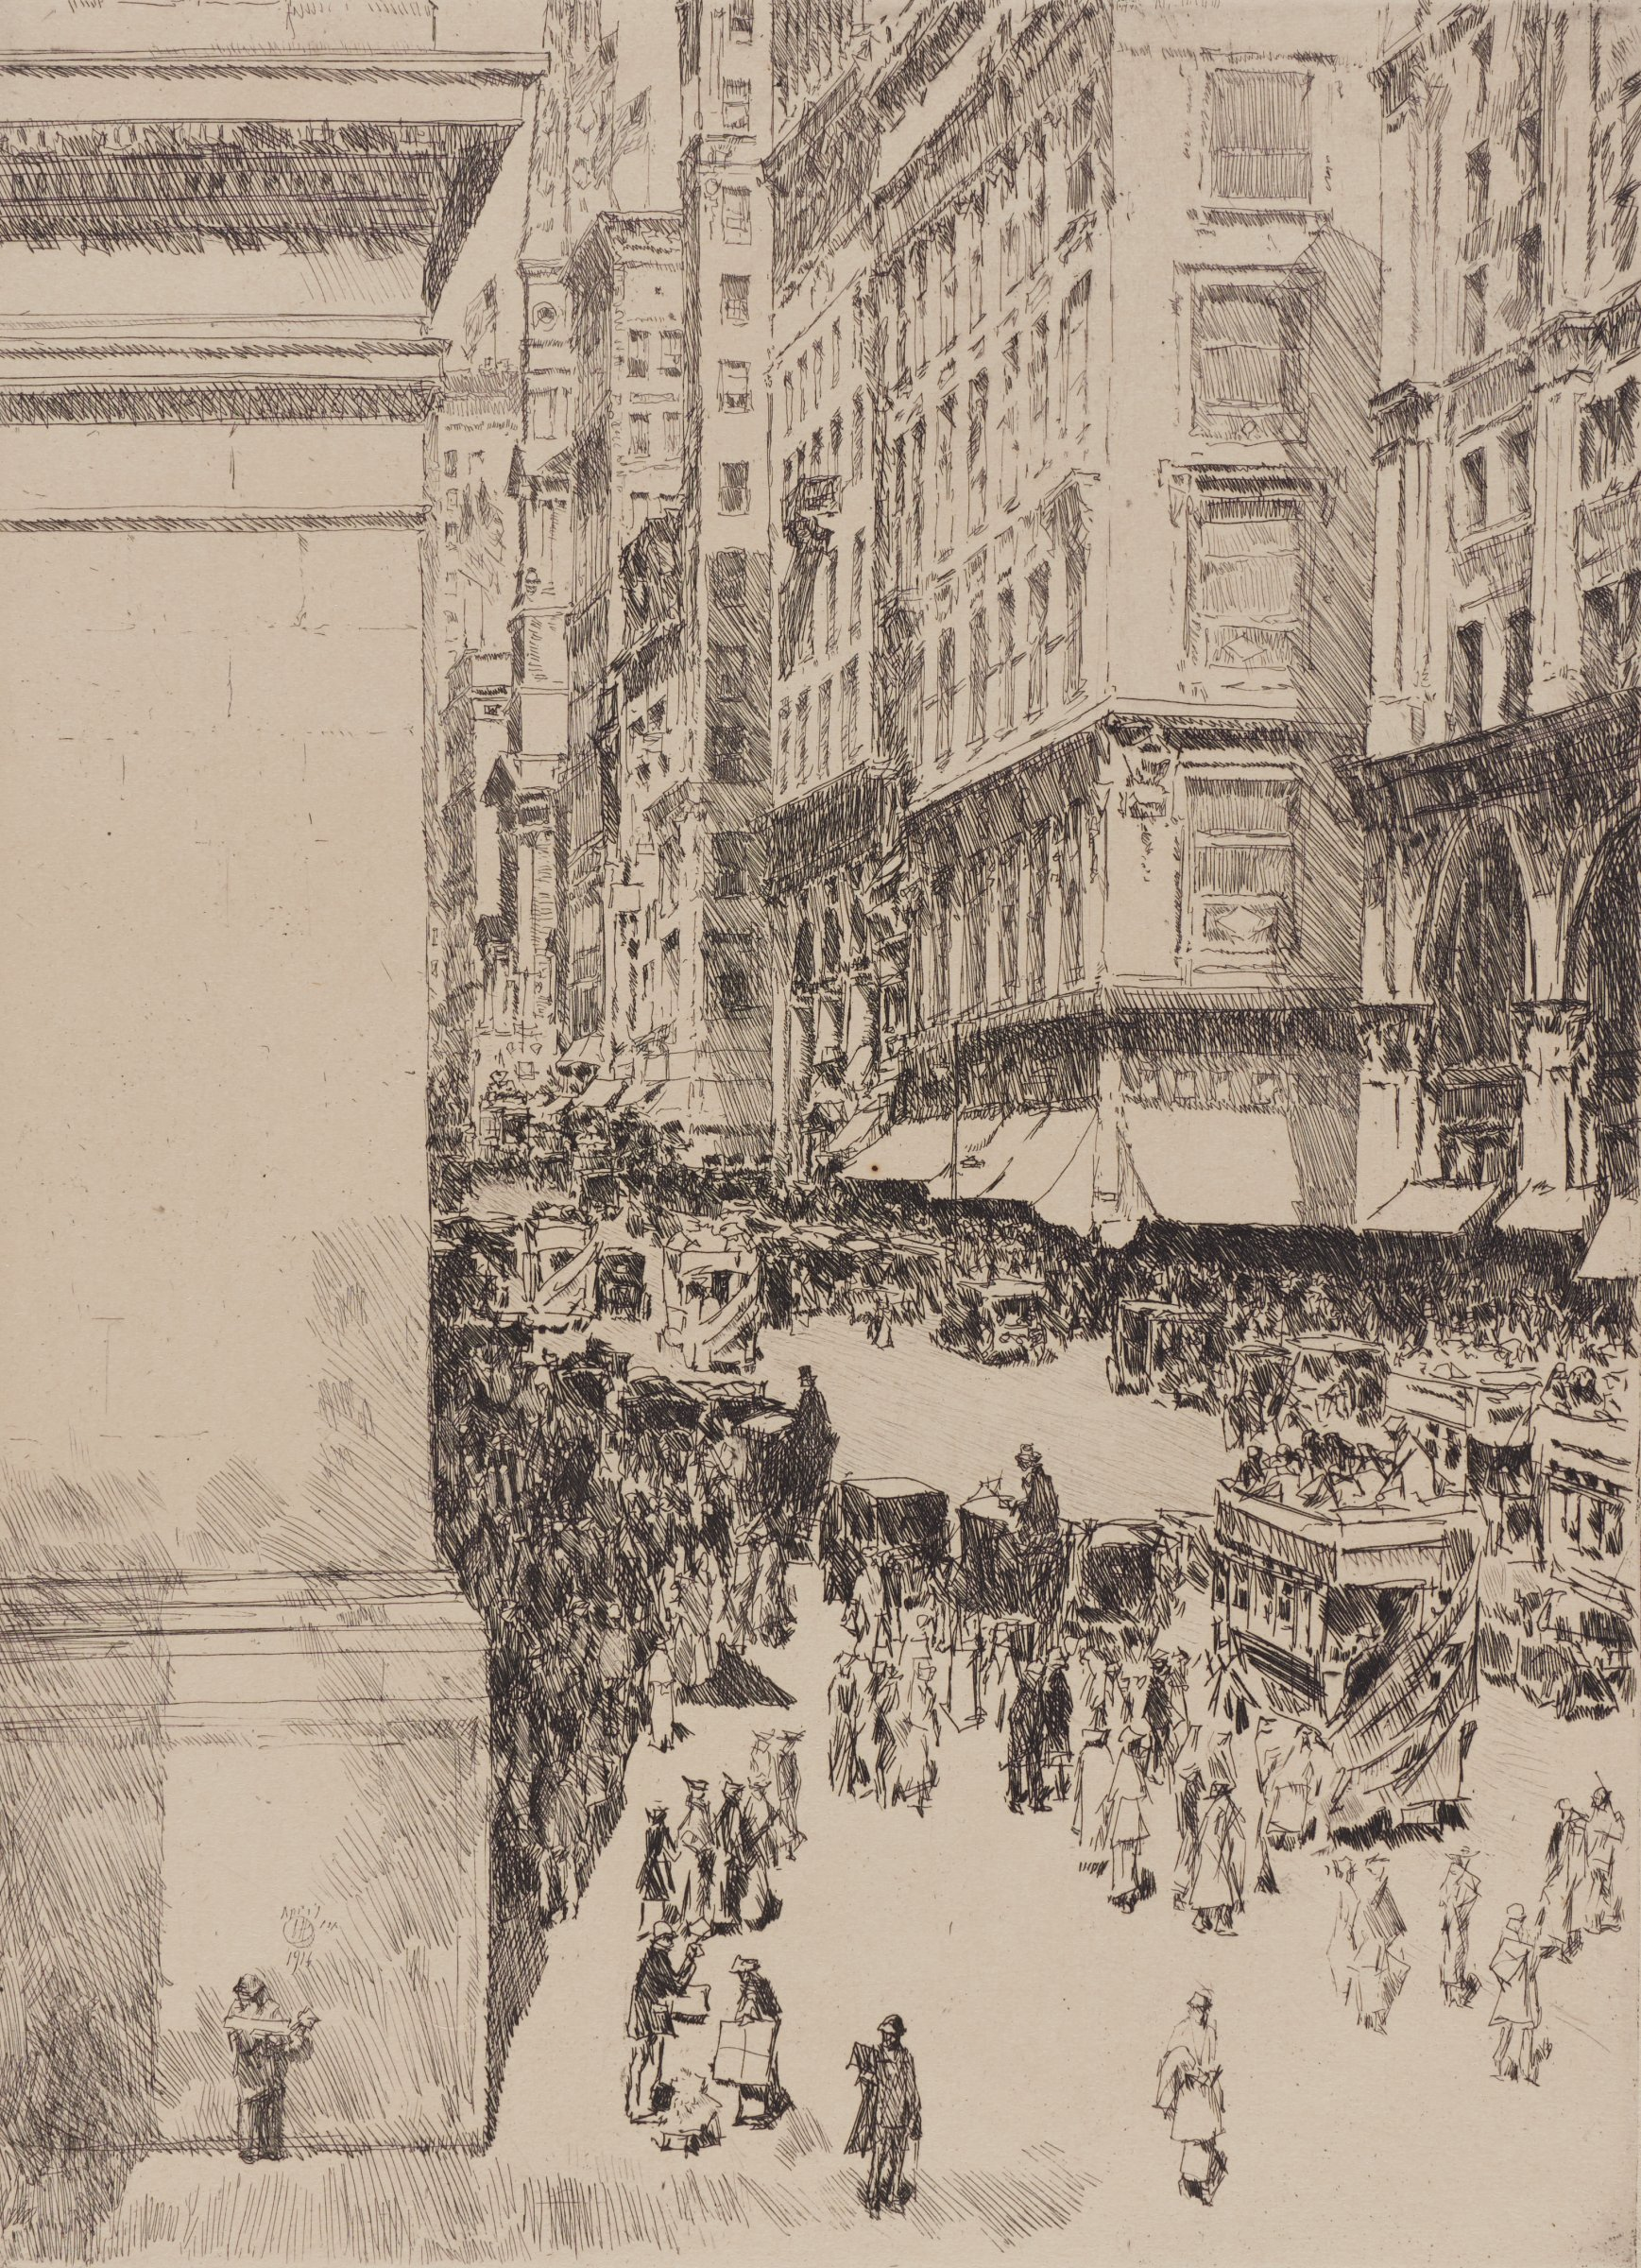 Fifth Avenue, Noon, Childe Hassam, etching (state ii/ii)